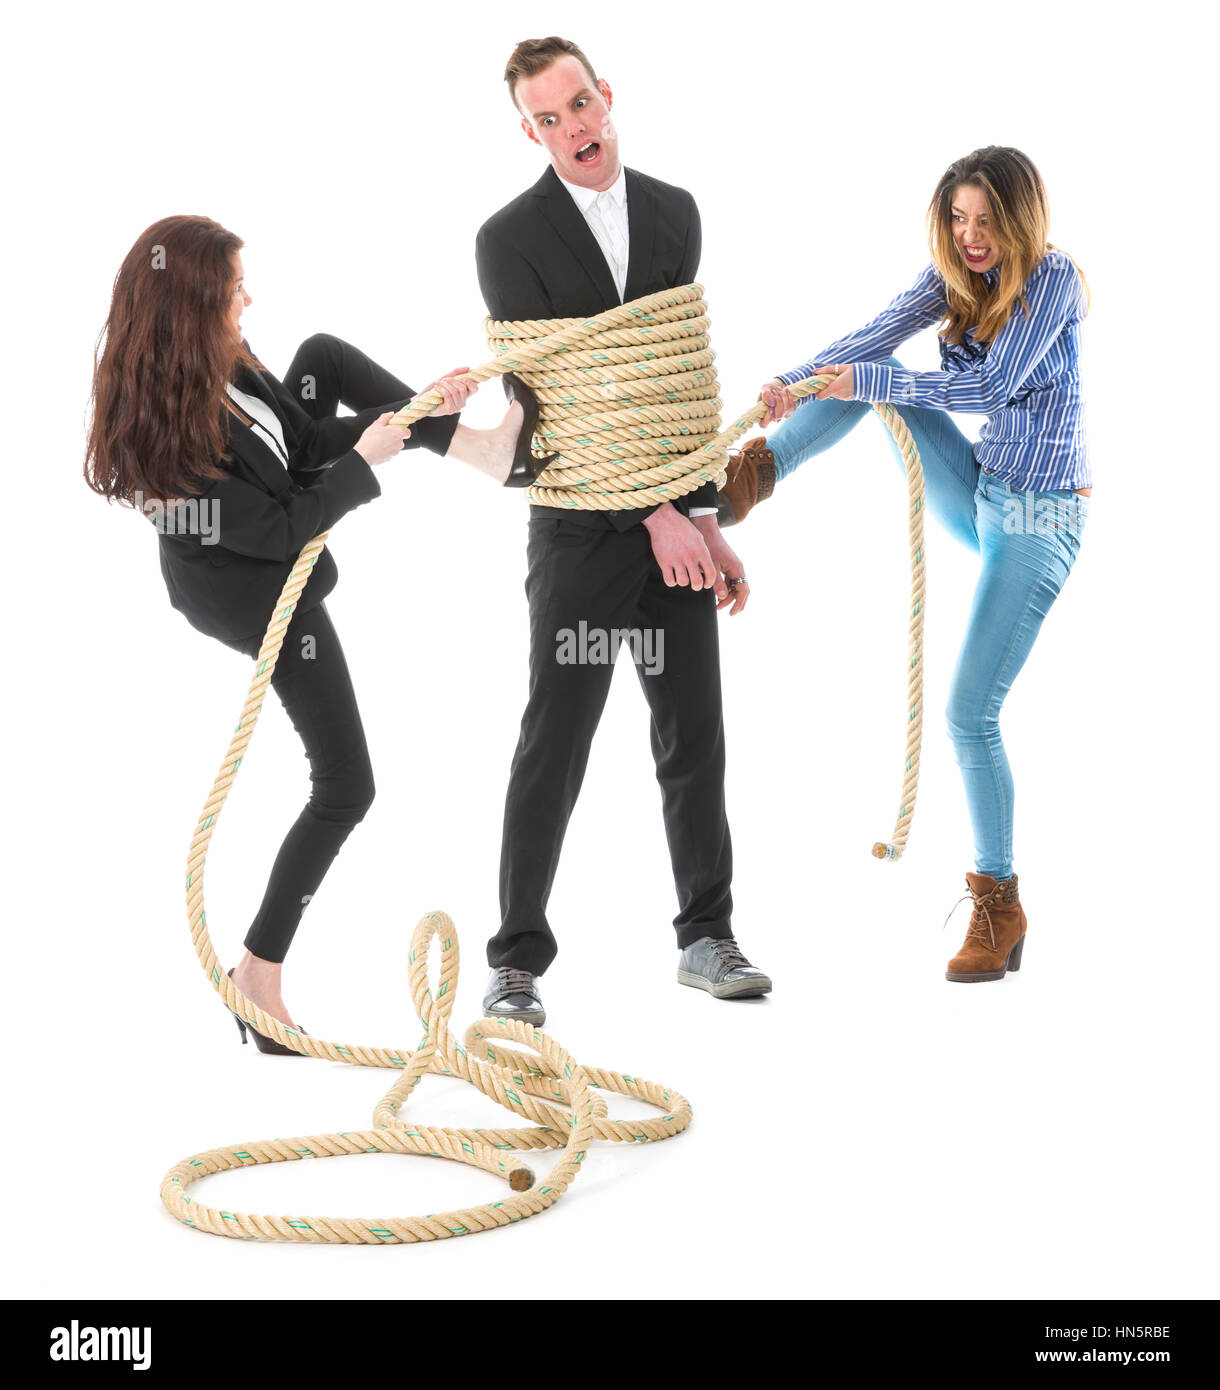 Two angry woman tying a business man with rope, isolated on a white background - Stock Image